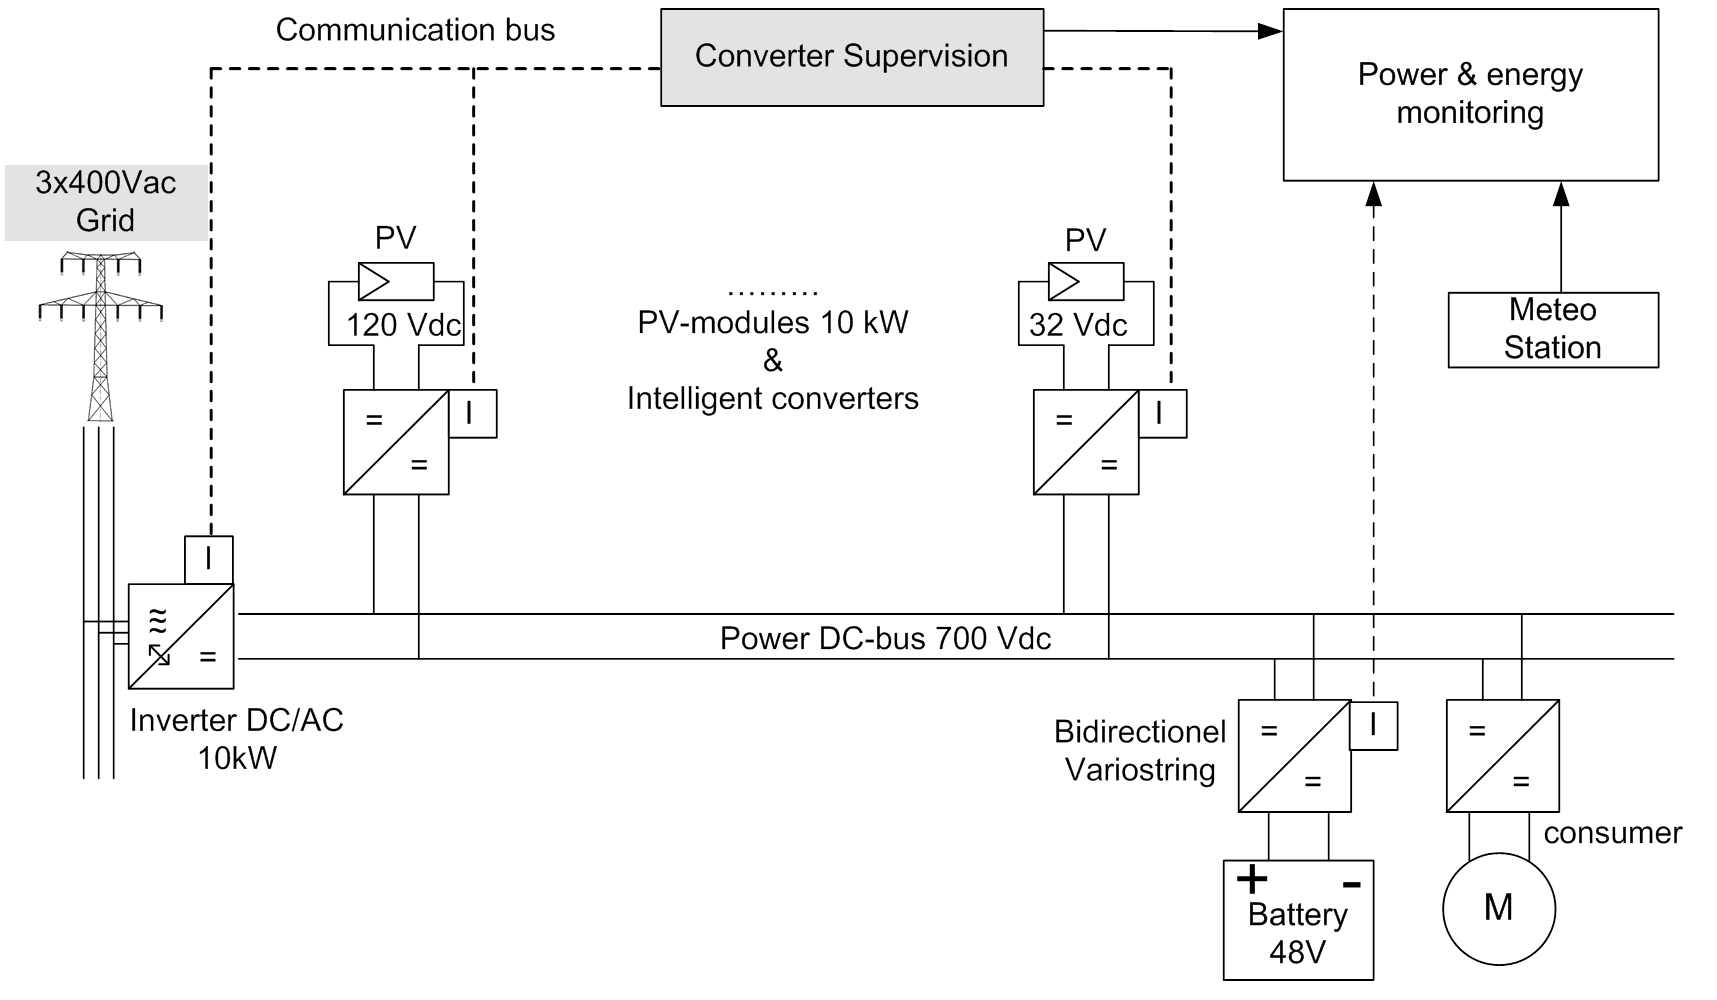 integration of local storage in a pv plant via dc bus link hes so